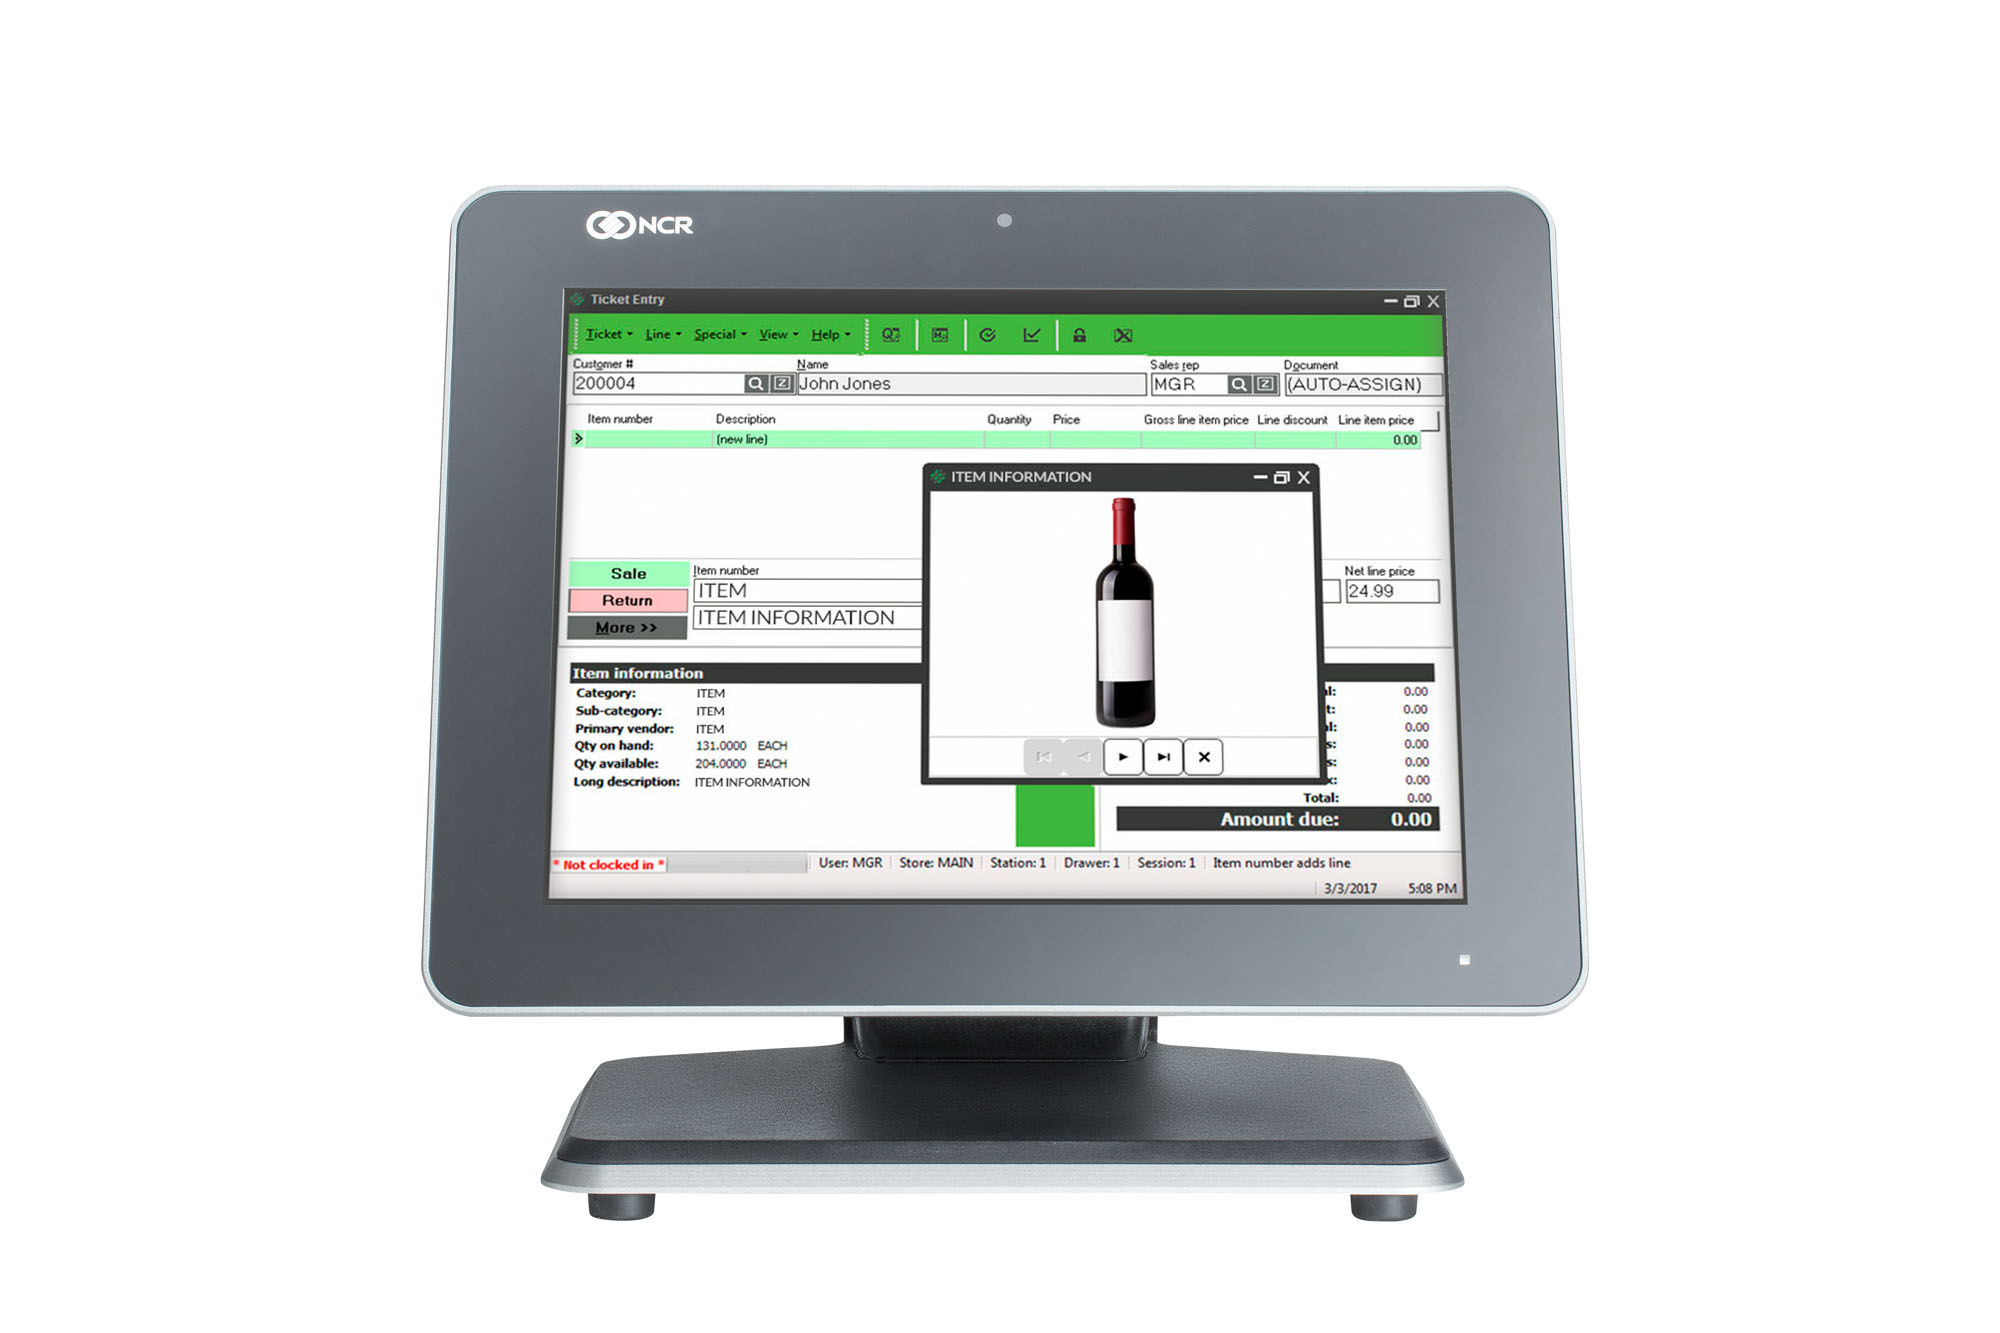 Rapid Bev POS - NCR Counterpoint - Monitor Image